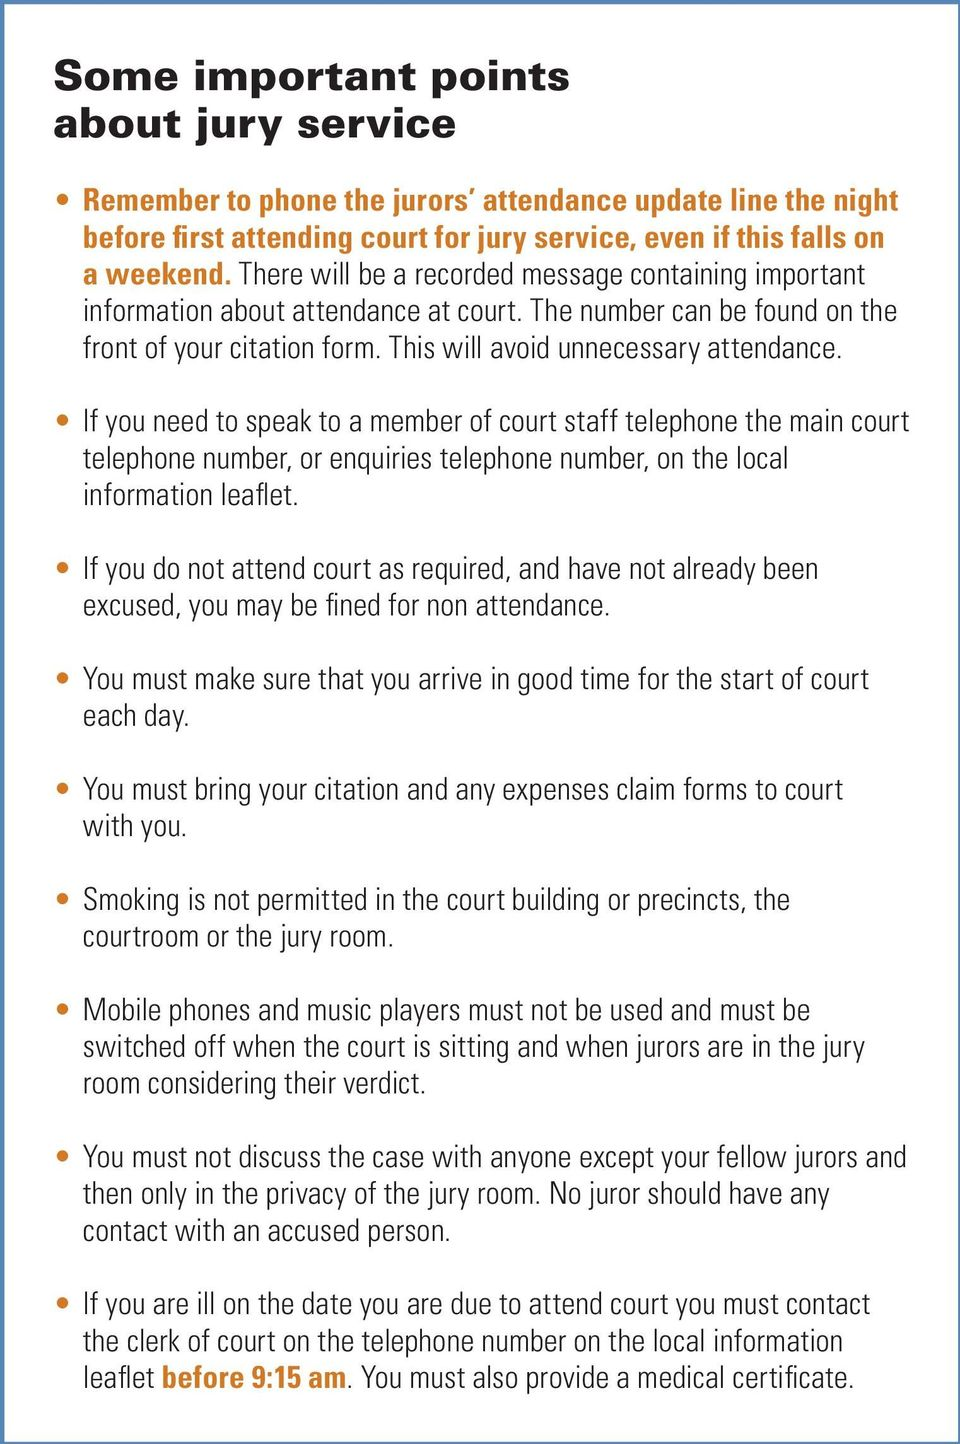 If you need to speak to a member of court staff telephone the main court telephone number, or enquiries telephone number, on the local information leaflet.